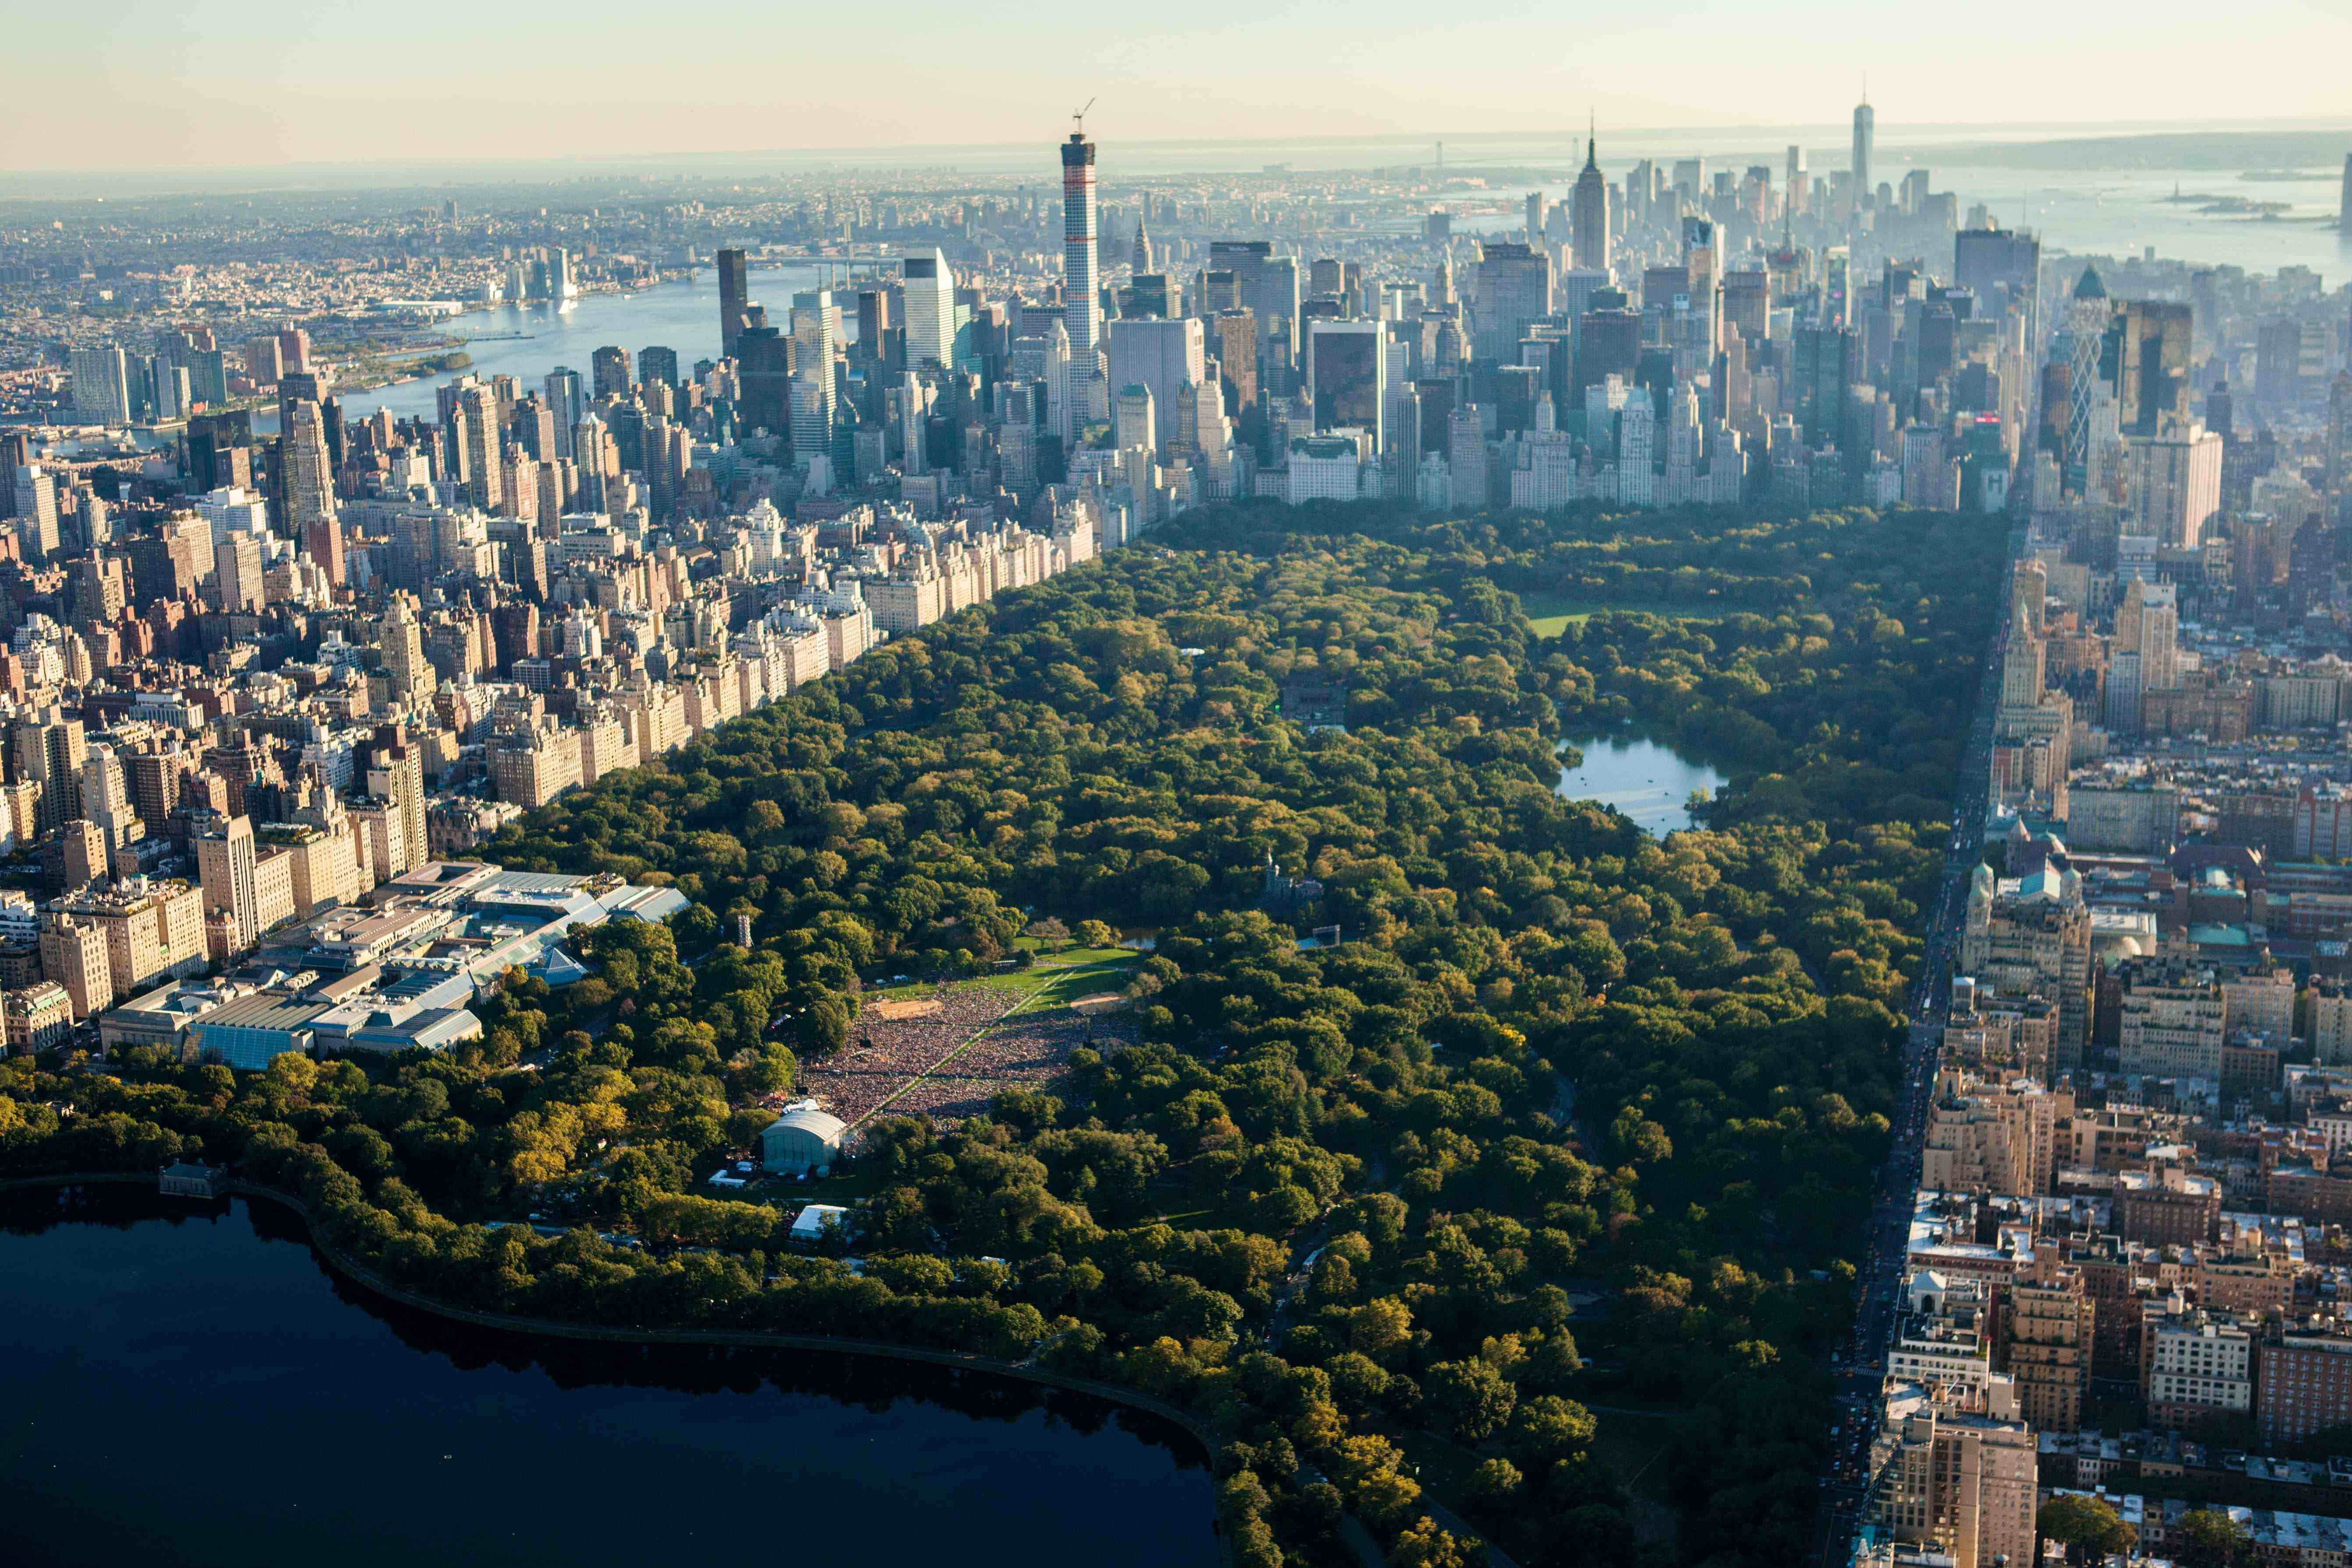 arial view of new york city's central park